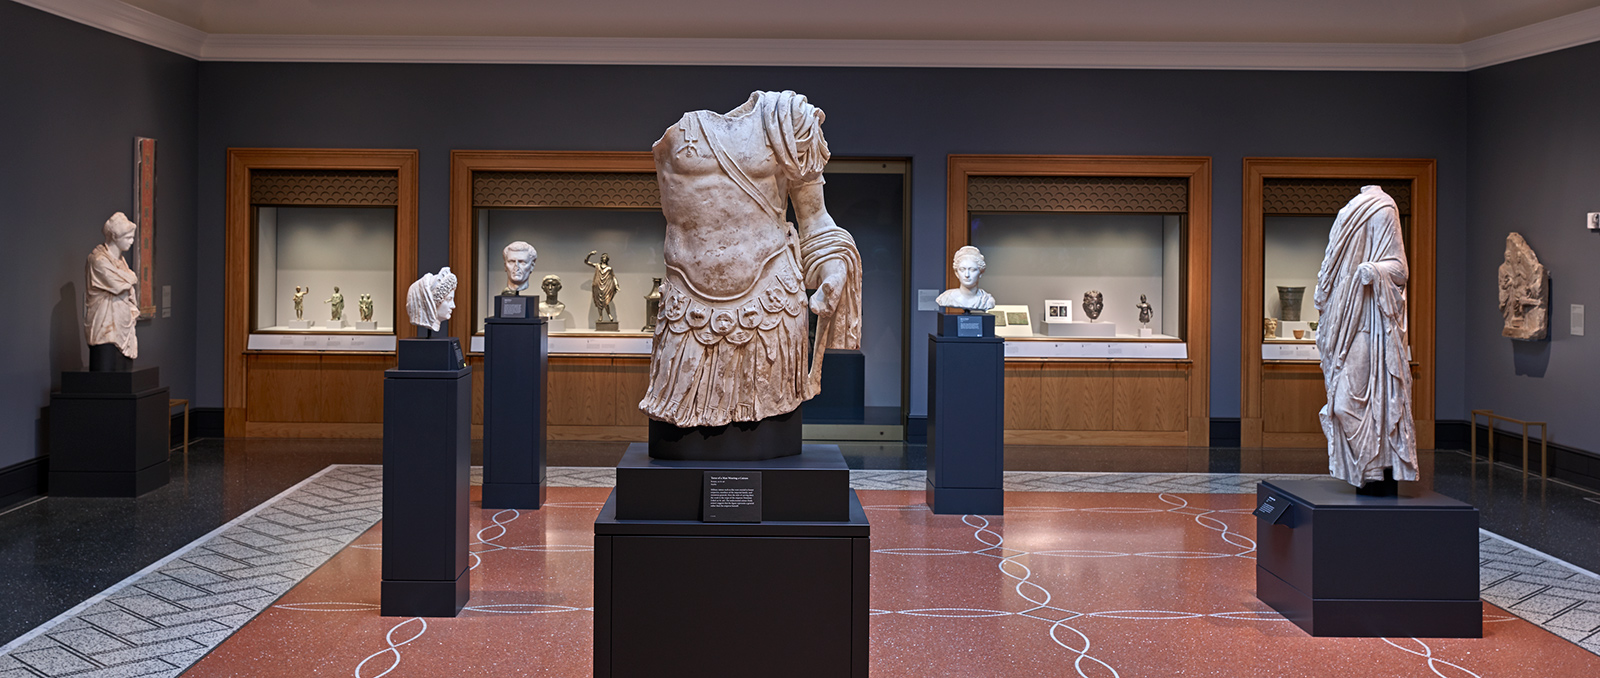 A wide-angle view of a gallery of ancient Roman sculpture with individual marbles on plinths